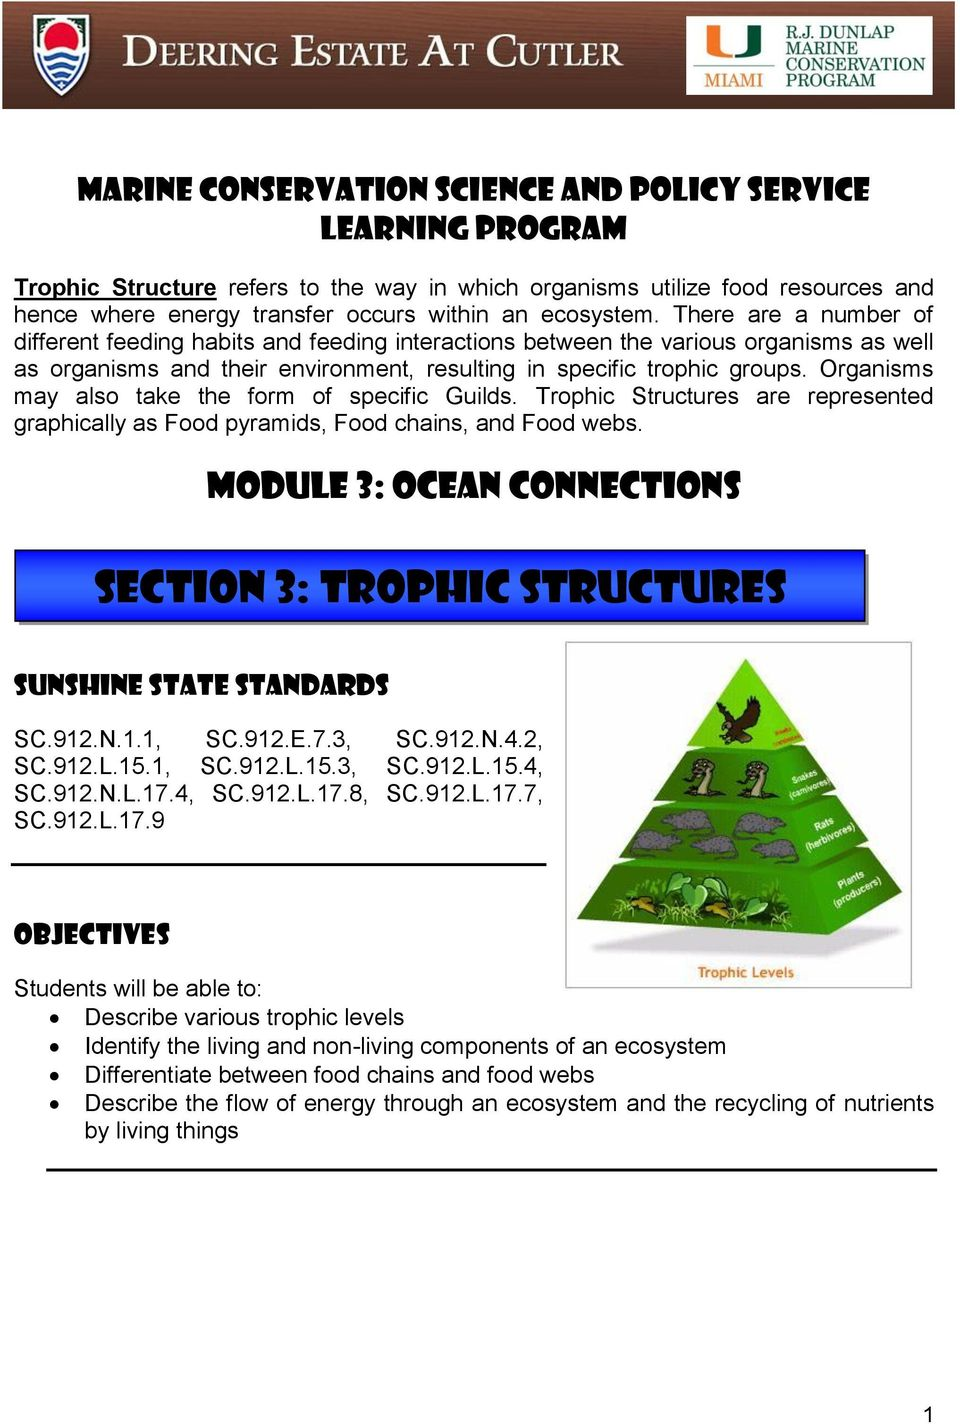 Organisms may also take the form of specific Guilds. Trophic Structures are represented graphically as Food pyramids, Food chains, and Food webs.